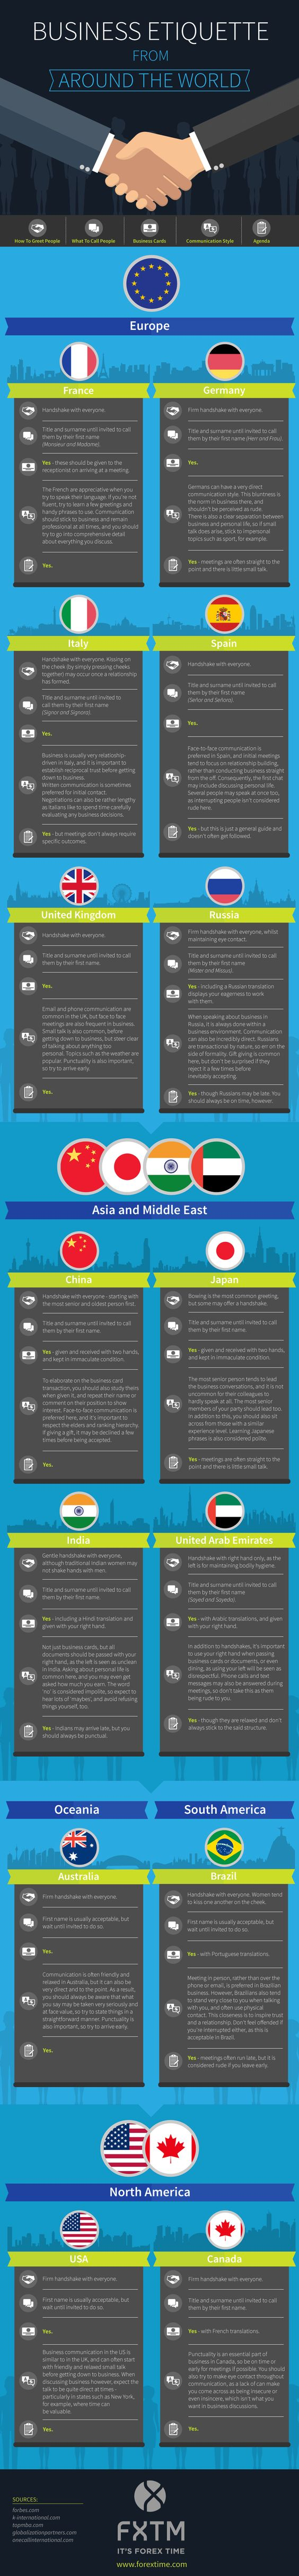 Business Etiquette from Around the World #Infographic #Business #Travel: